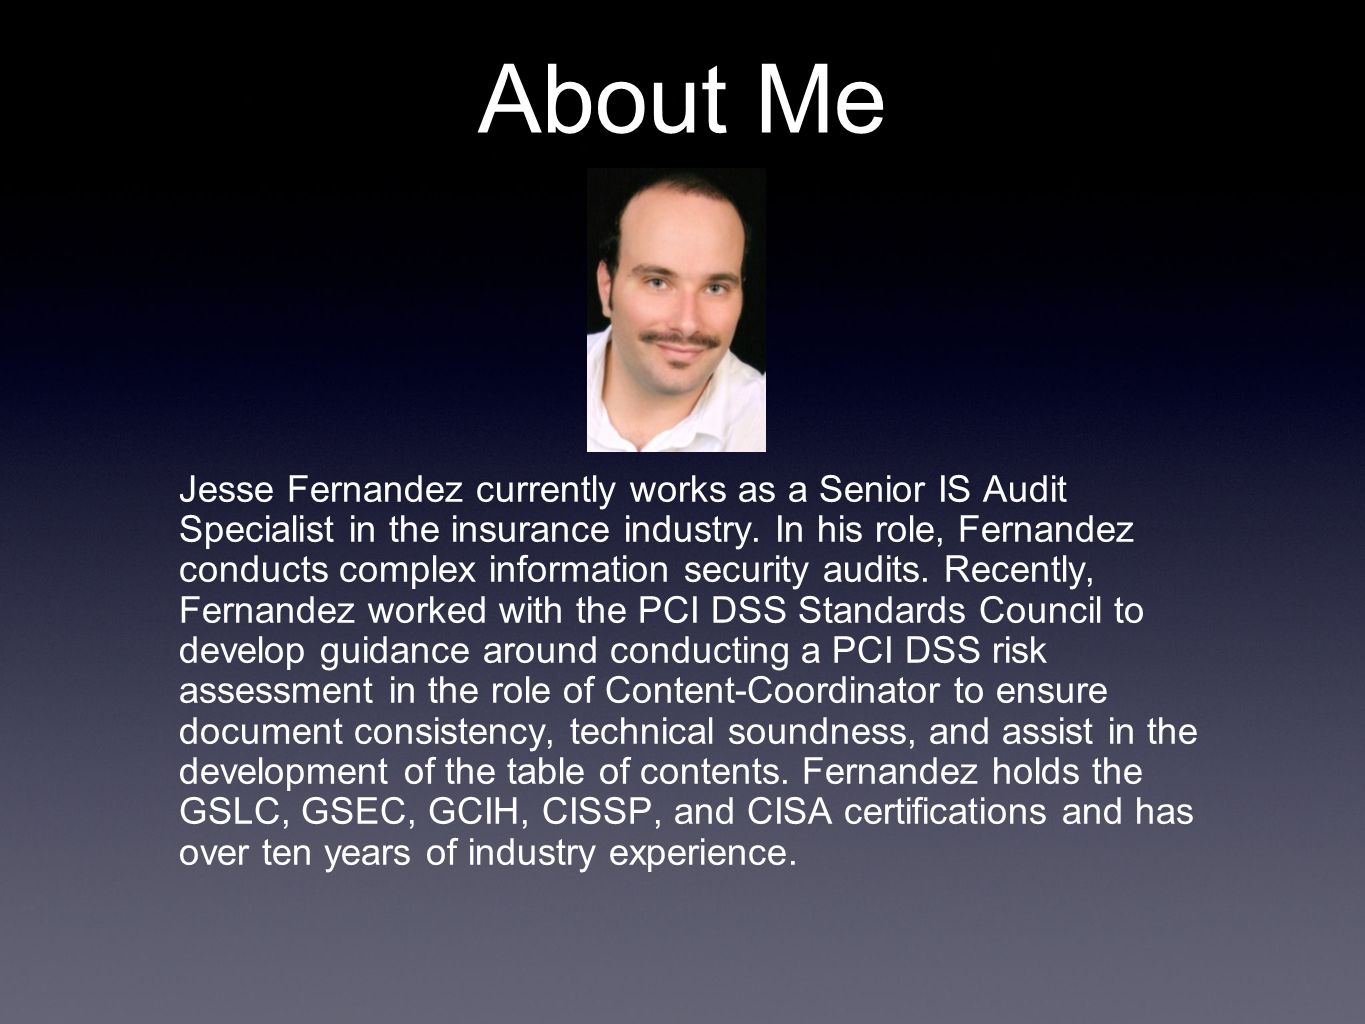 About Me Jesse Fernandez currently works as a Senior IS Audit Specialist in the insurance industry.